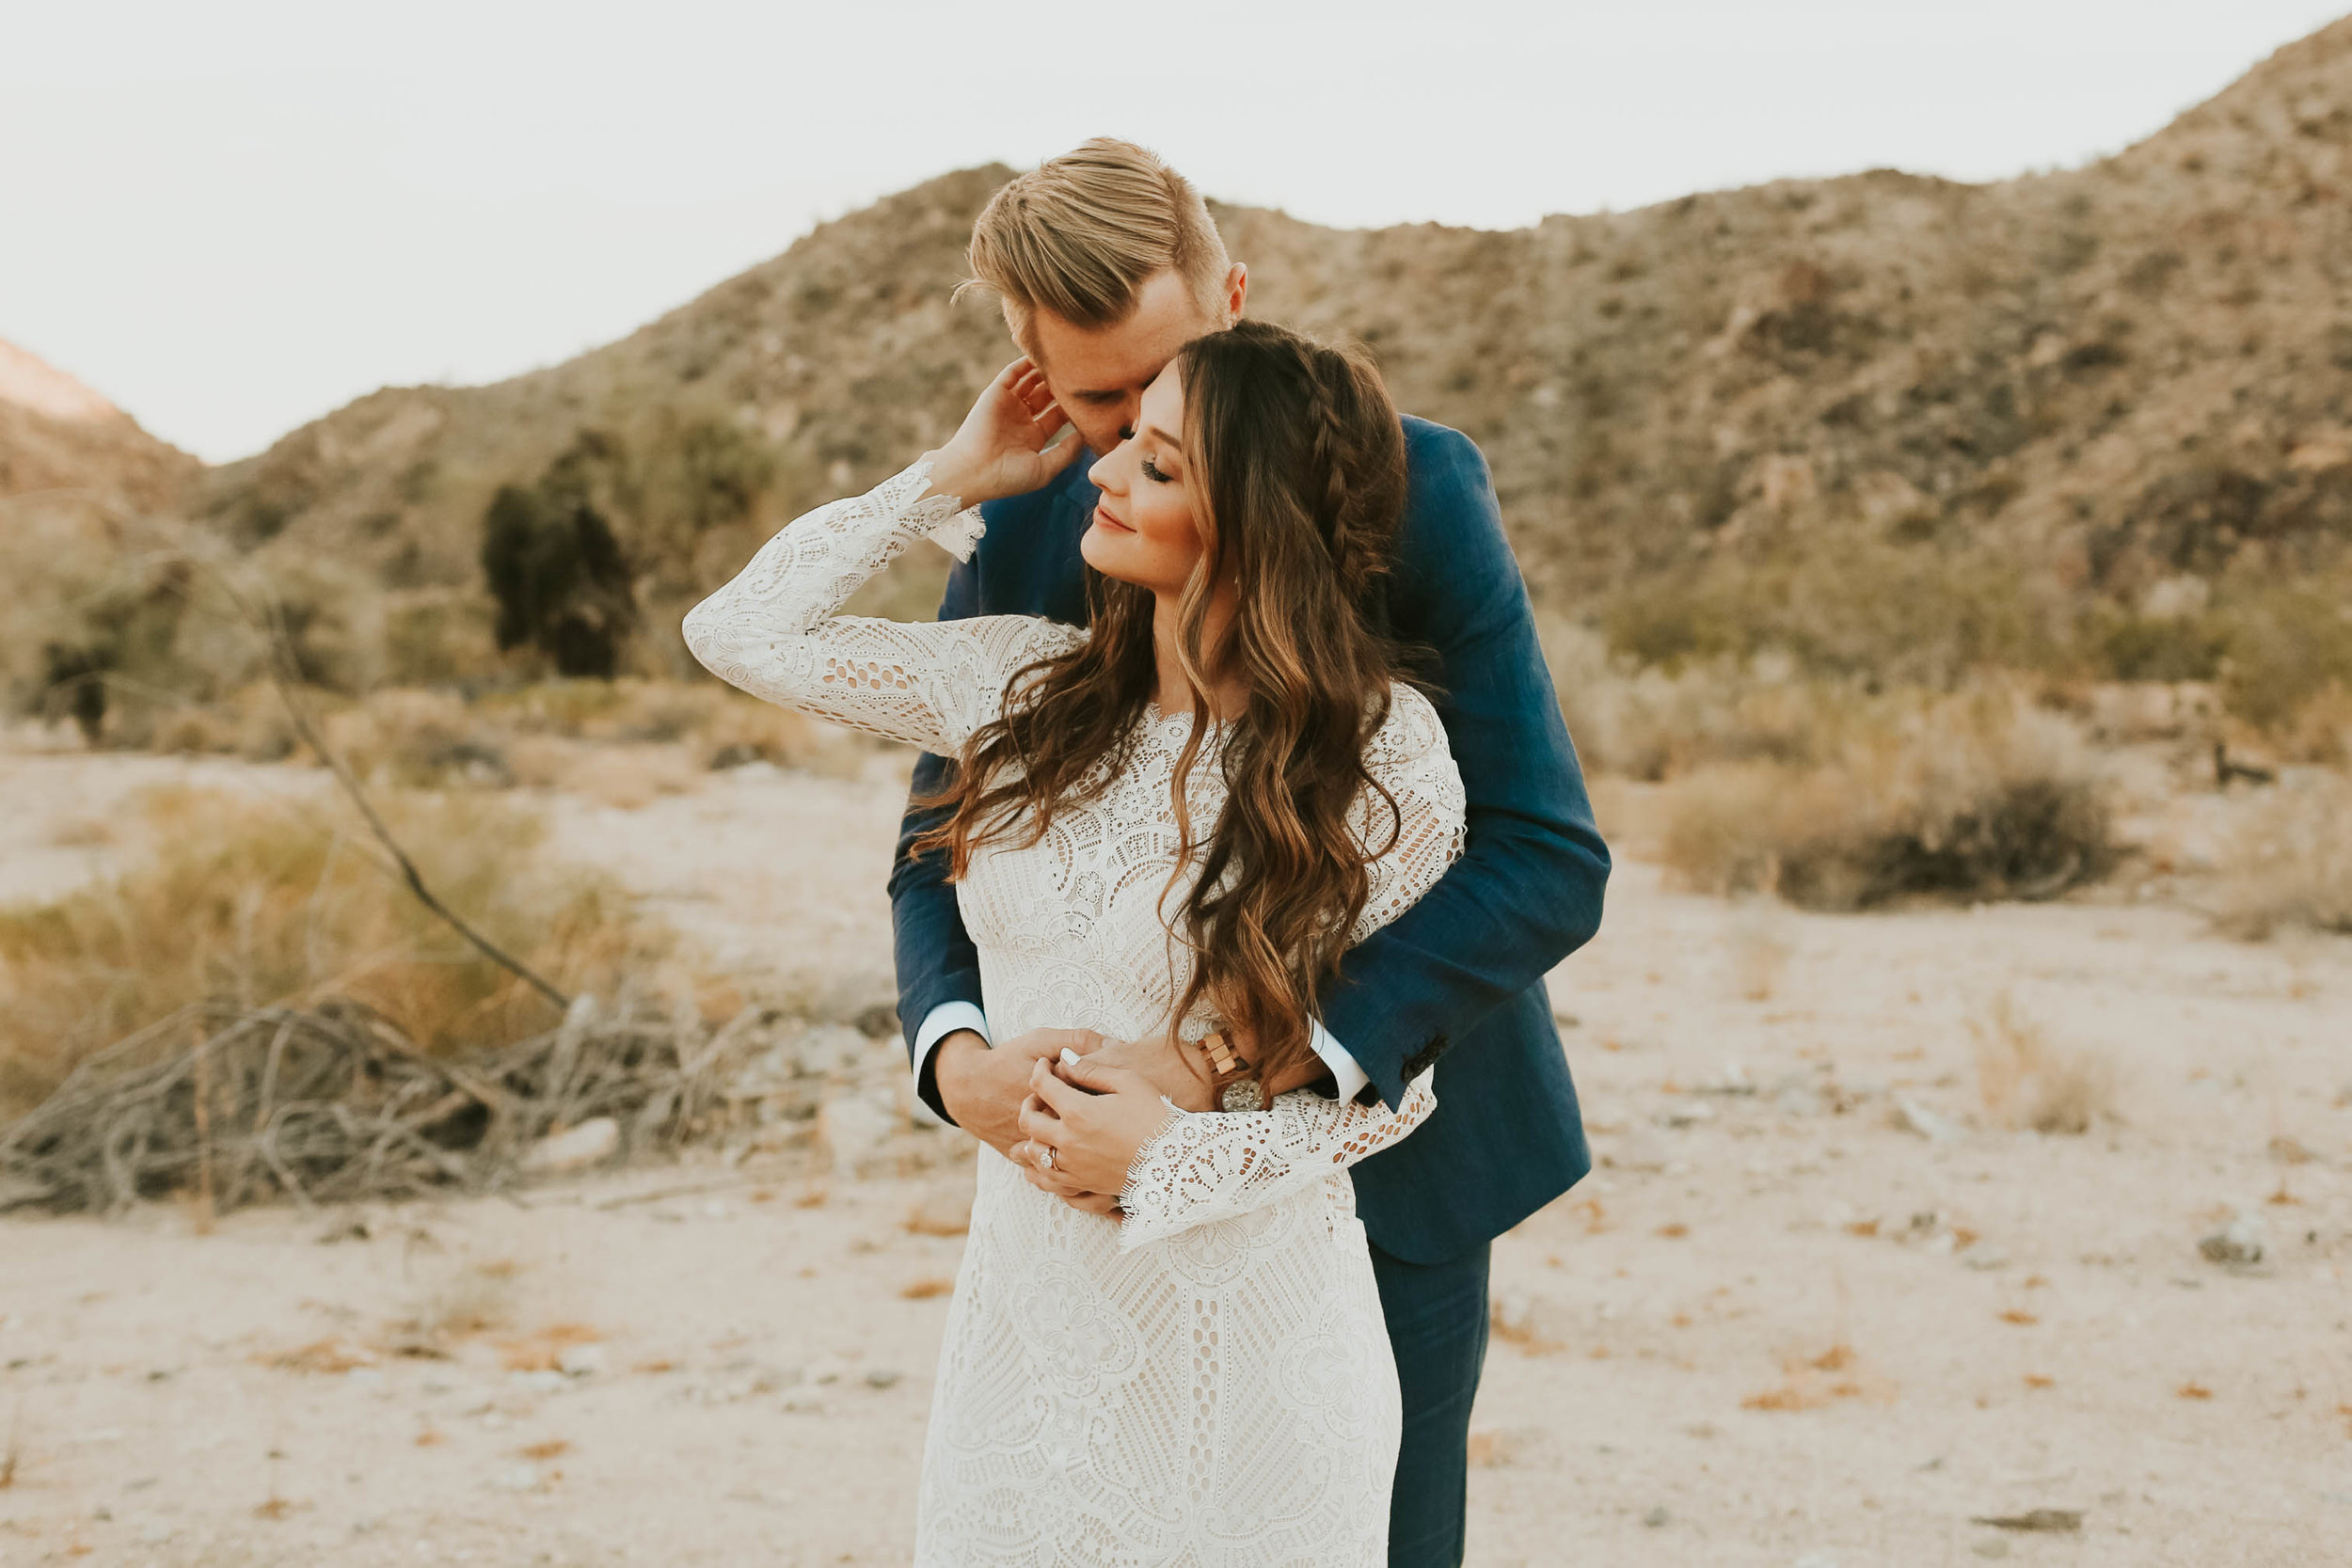 stephanie + caleb bridals - joshua tree national park, ca